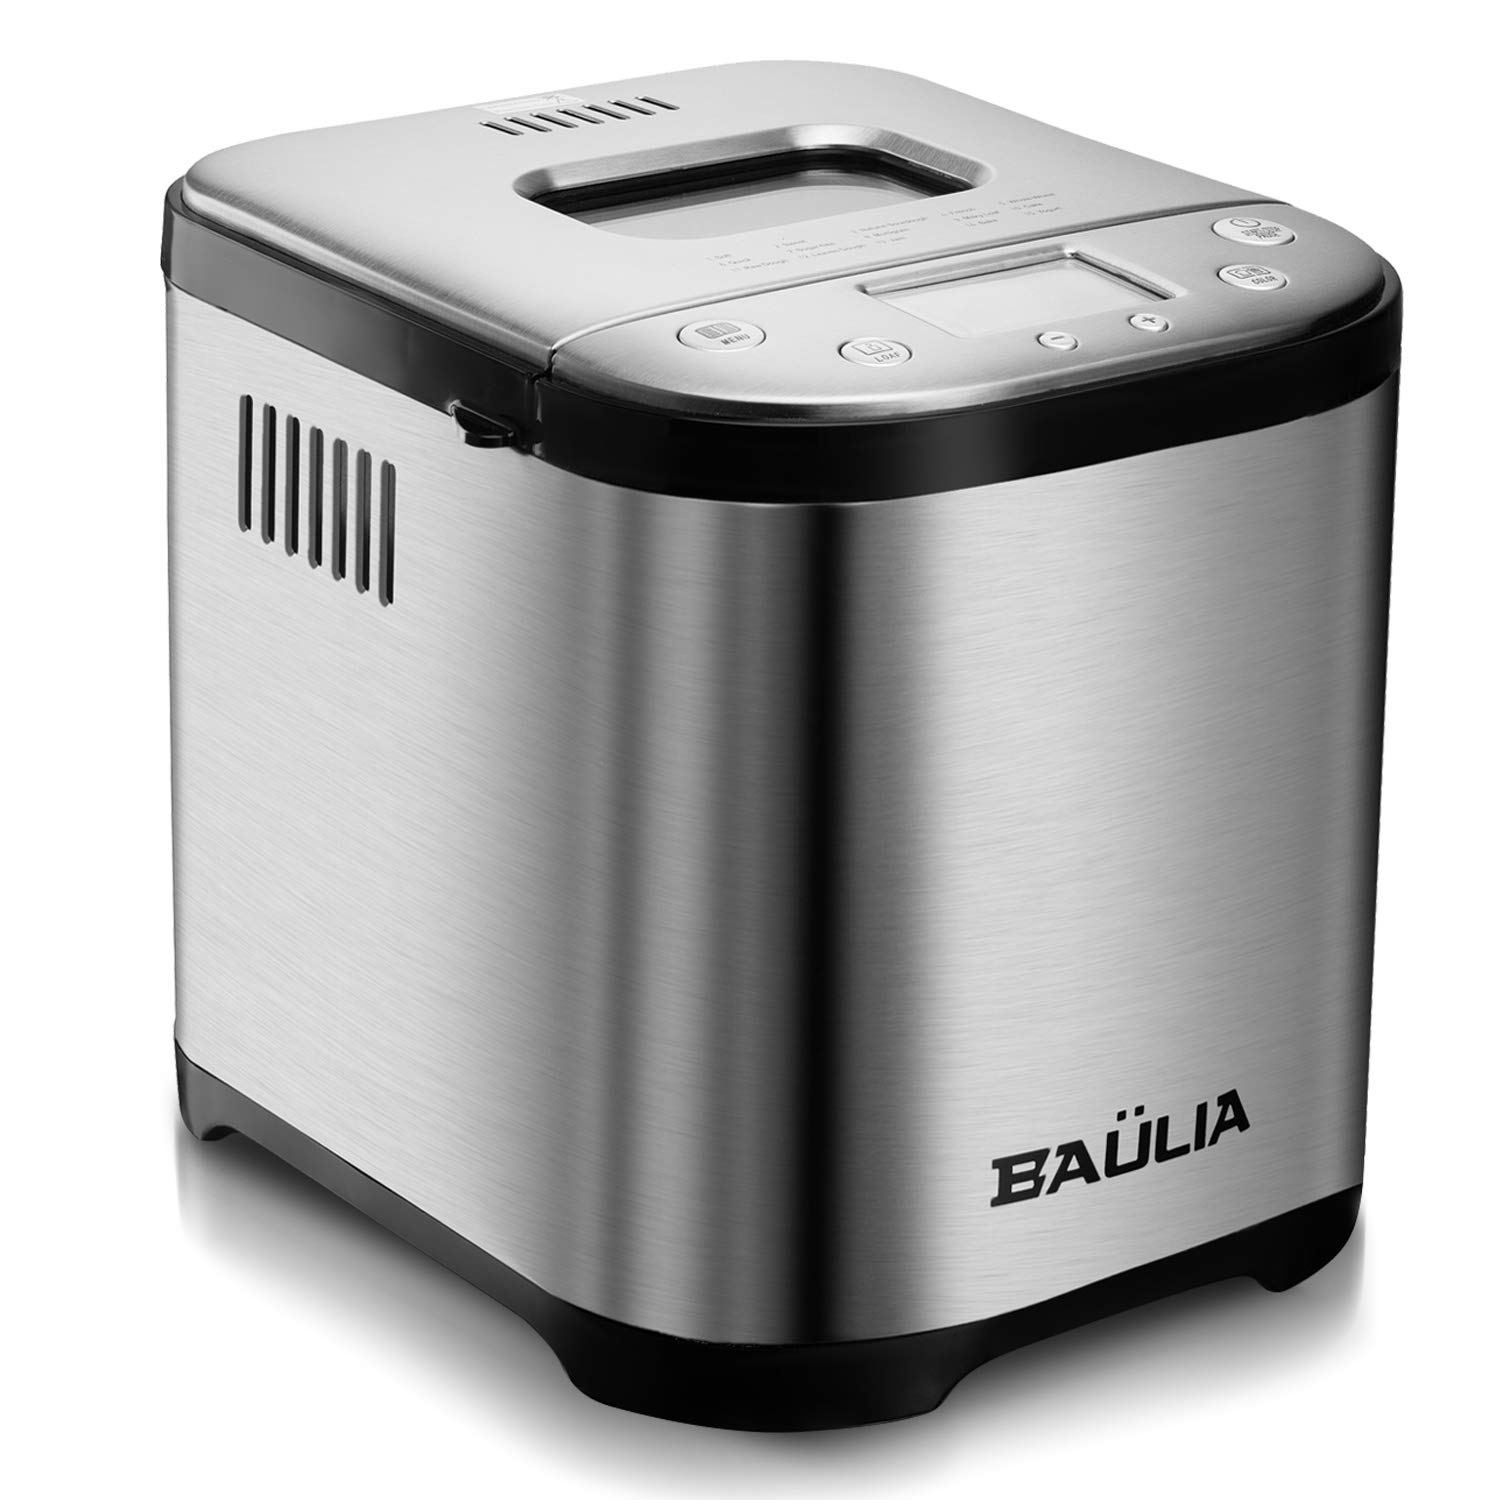 Baulia Automatic Bread Maker Machine – Sugar-Free Functions 15 Programmable Bread Types Settings